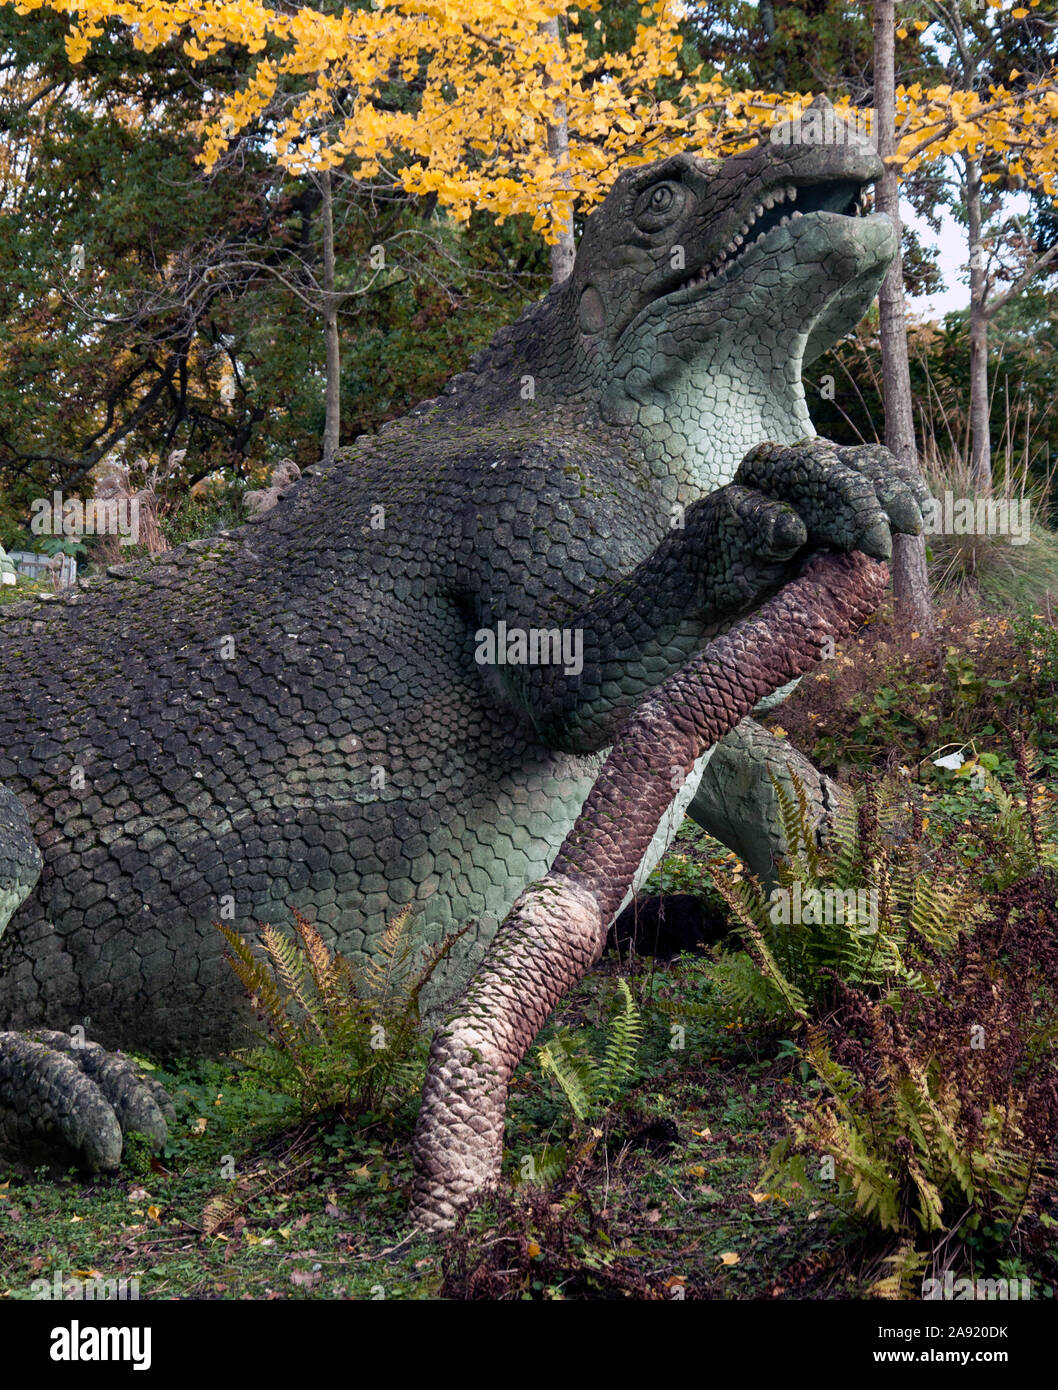 A dinosaur sculpture in Crystal Palace Park in London. These are the first dinasour sculptures in the world - inaccurate by modern science knowledge. Stock Photo